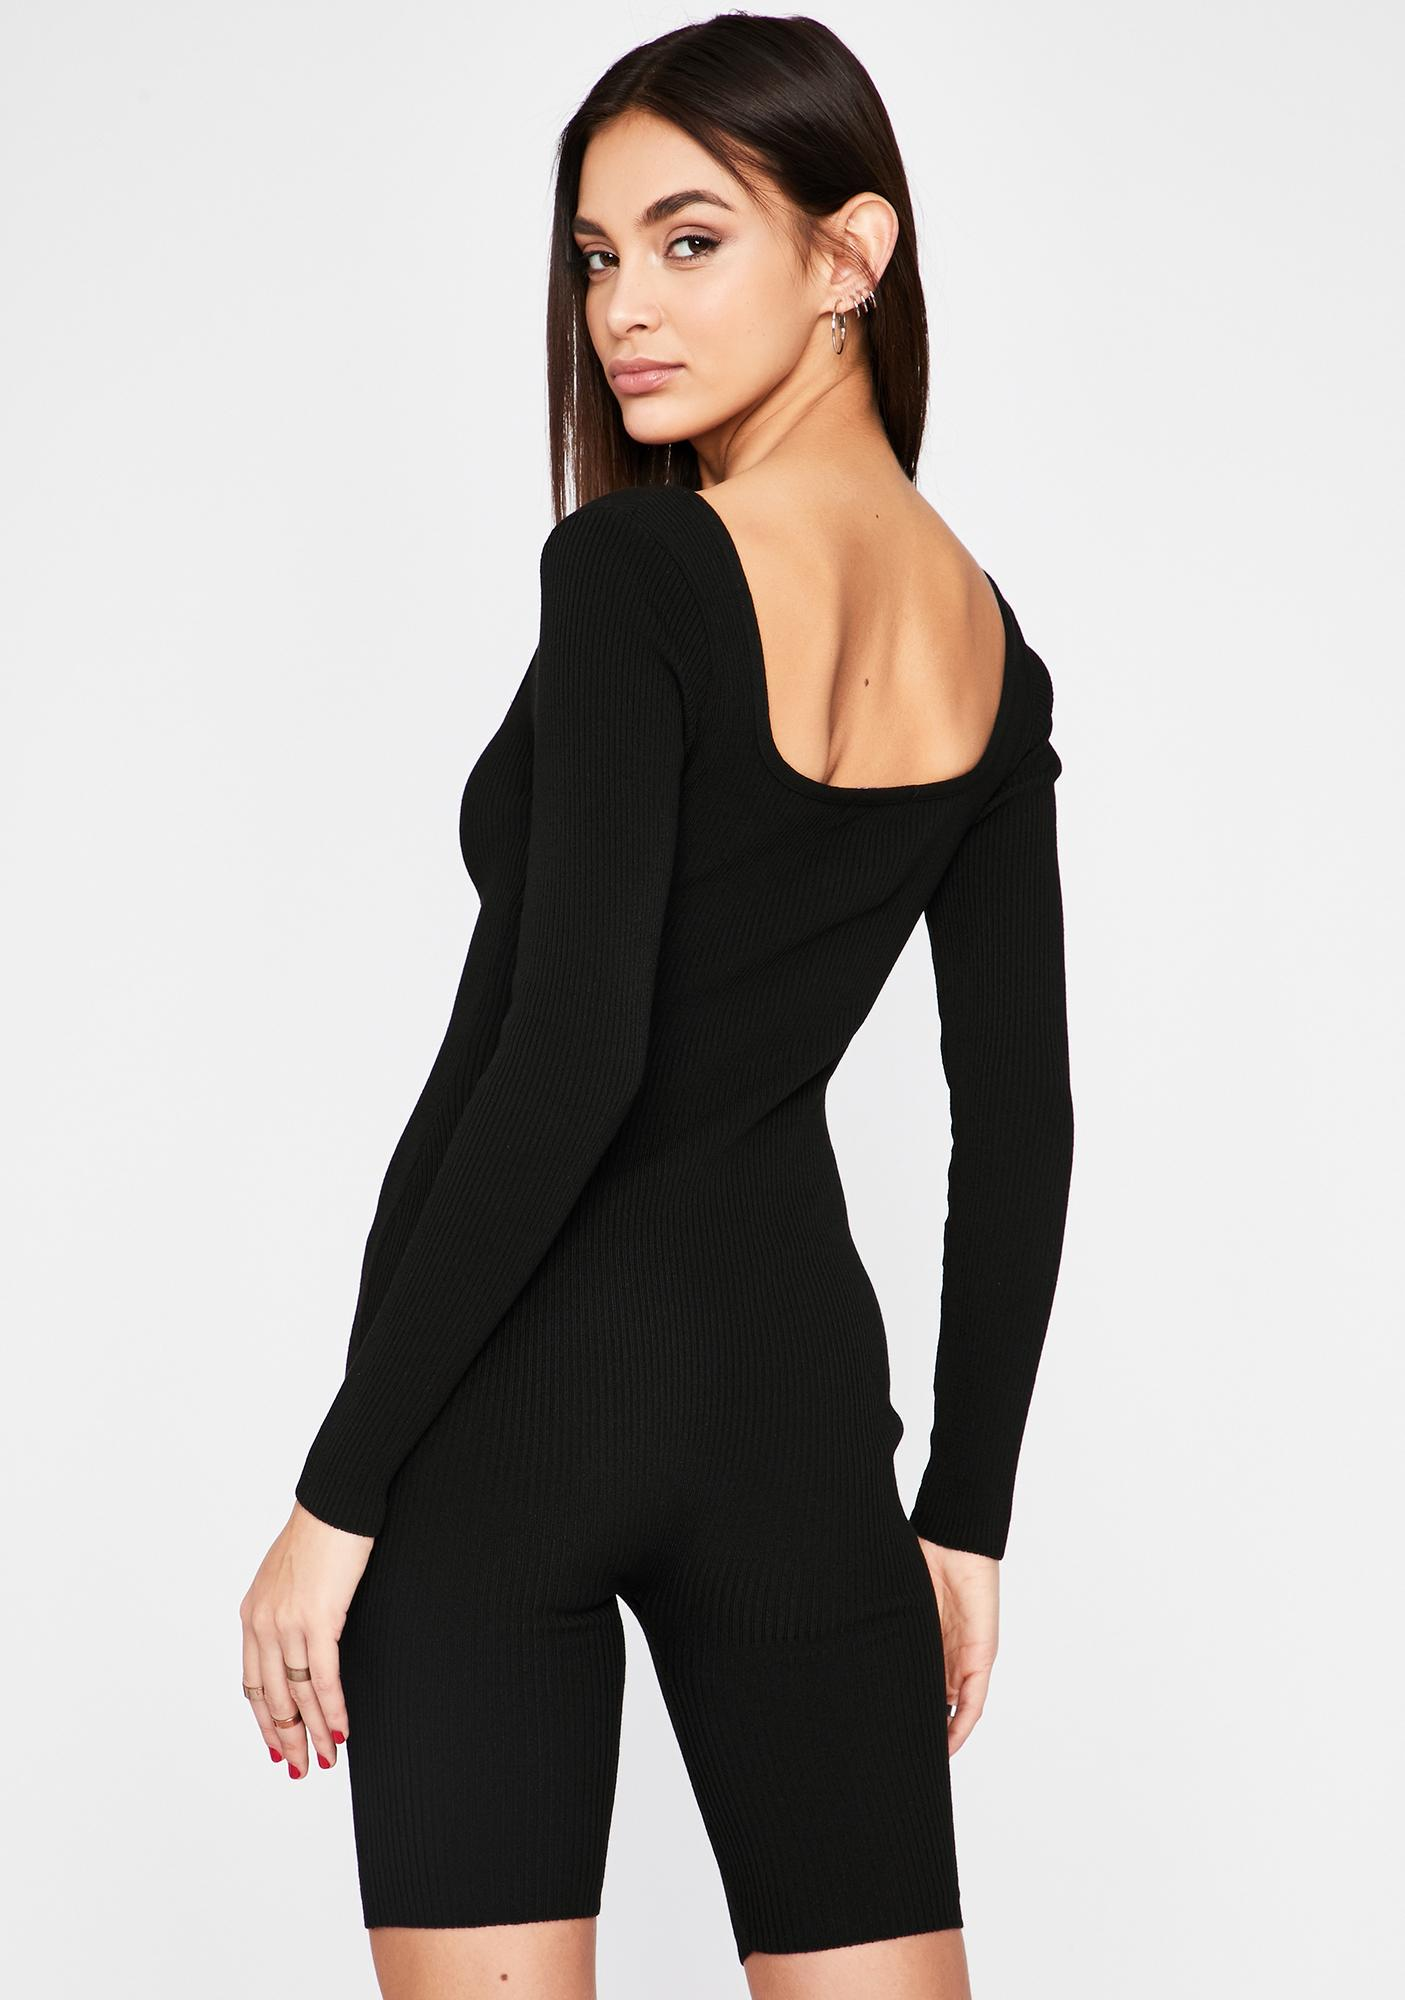 Chaotic Reign Long Sleeve Romper